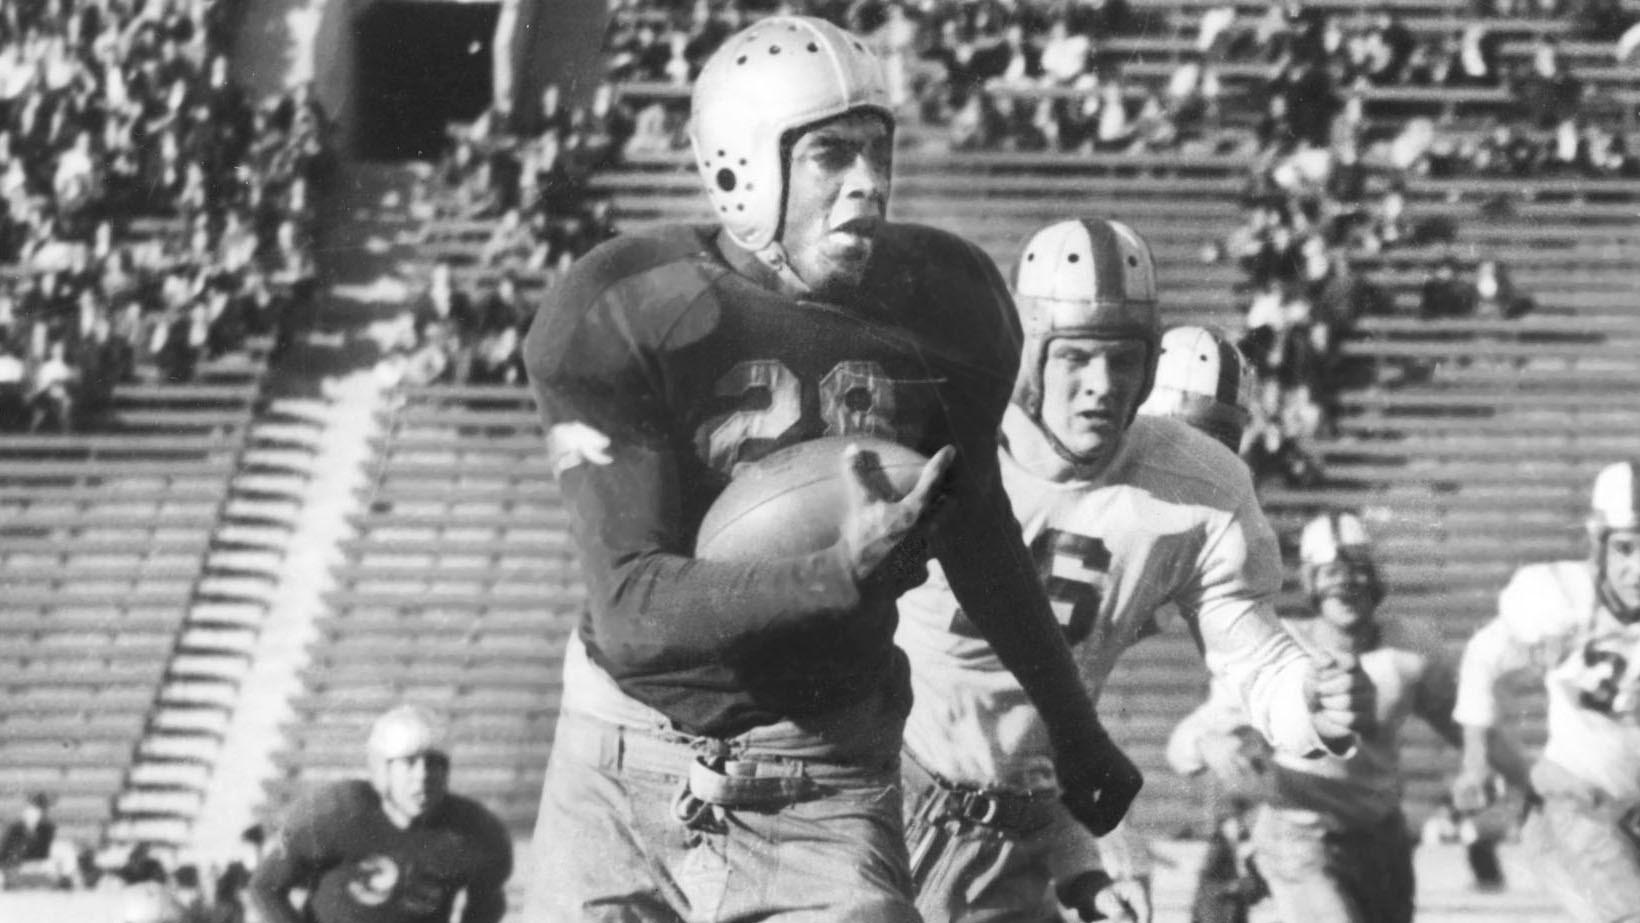 Jackie Robinson wore No. 28 for UCLA's football team. In this file photo, he's playing for the Bruins against Stanford.